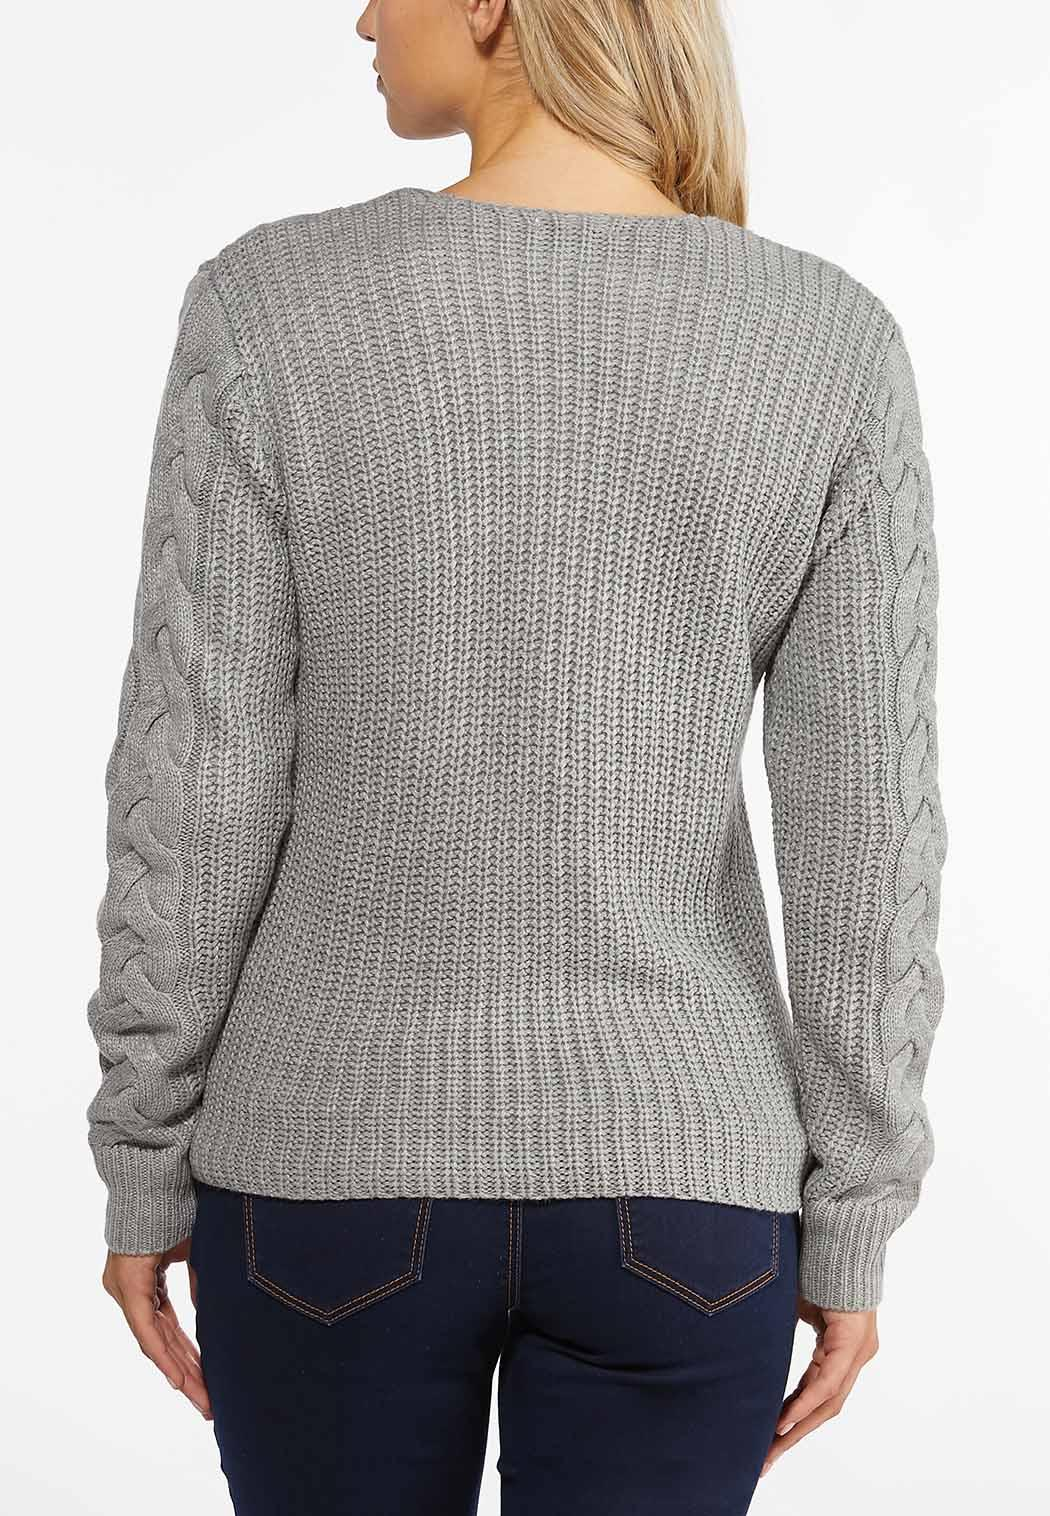 Cable Knit Cardigan Sweater (Item #44435489)